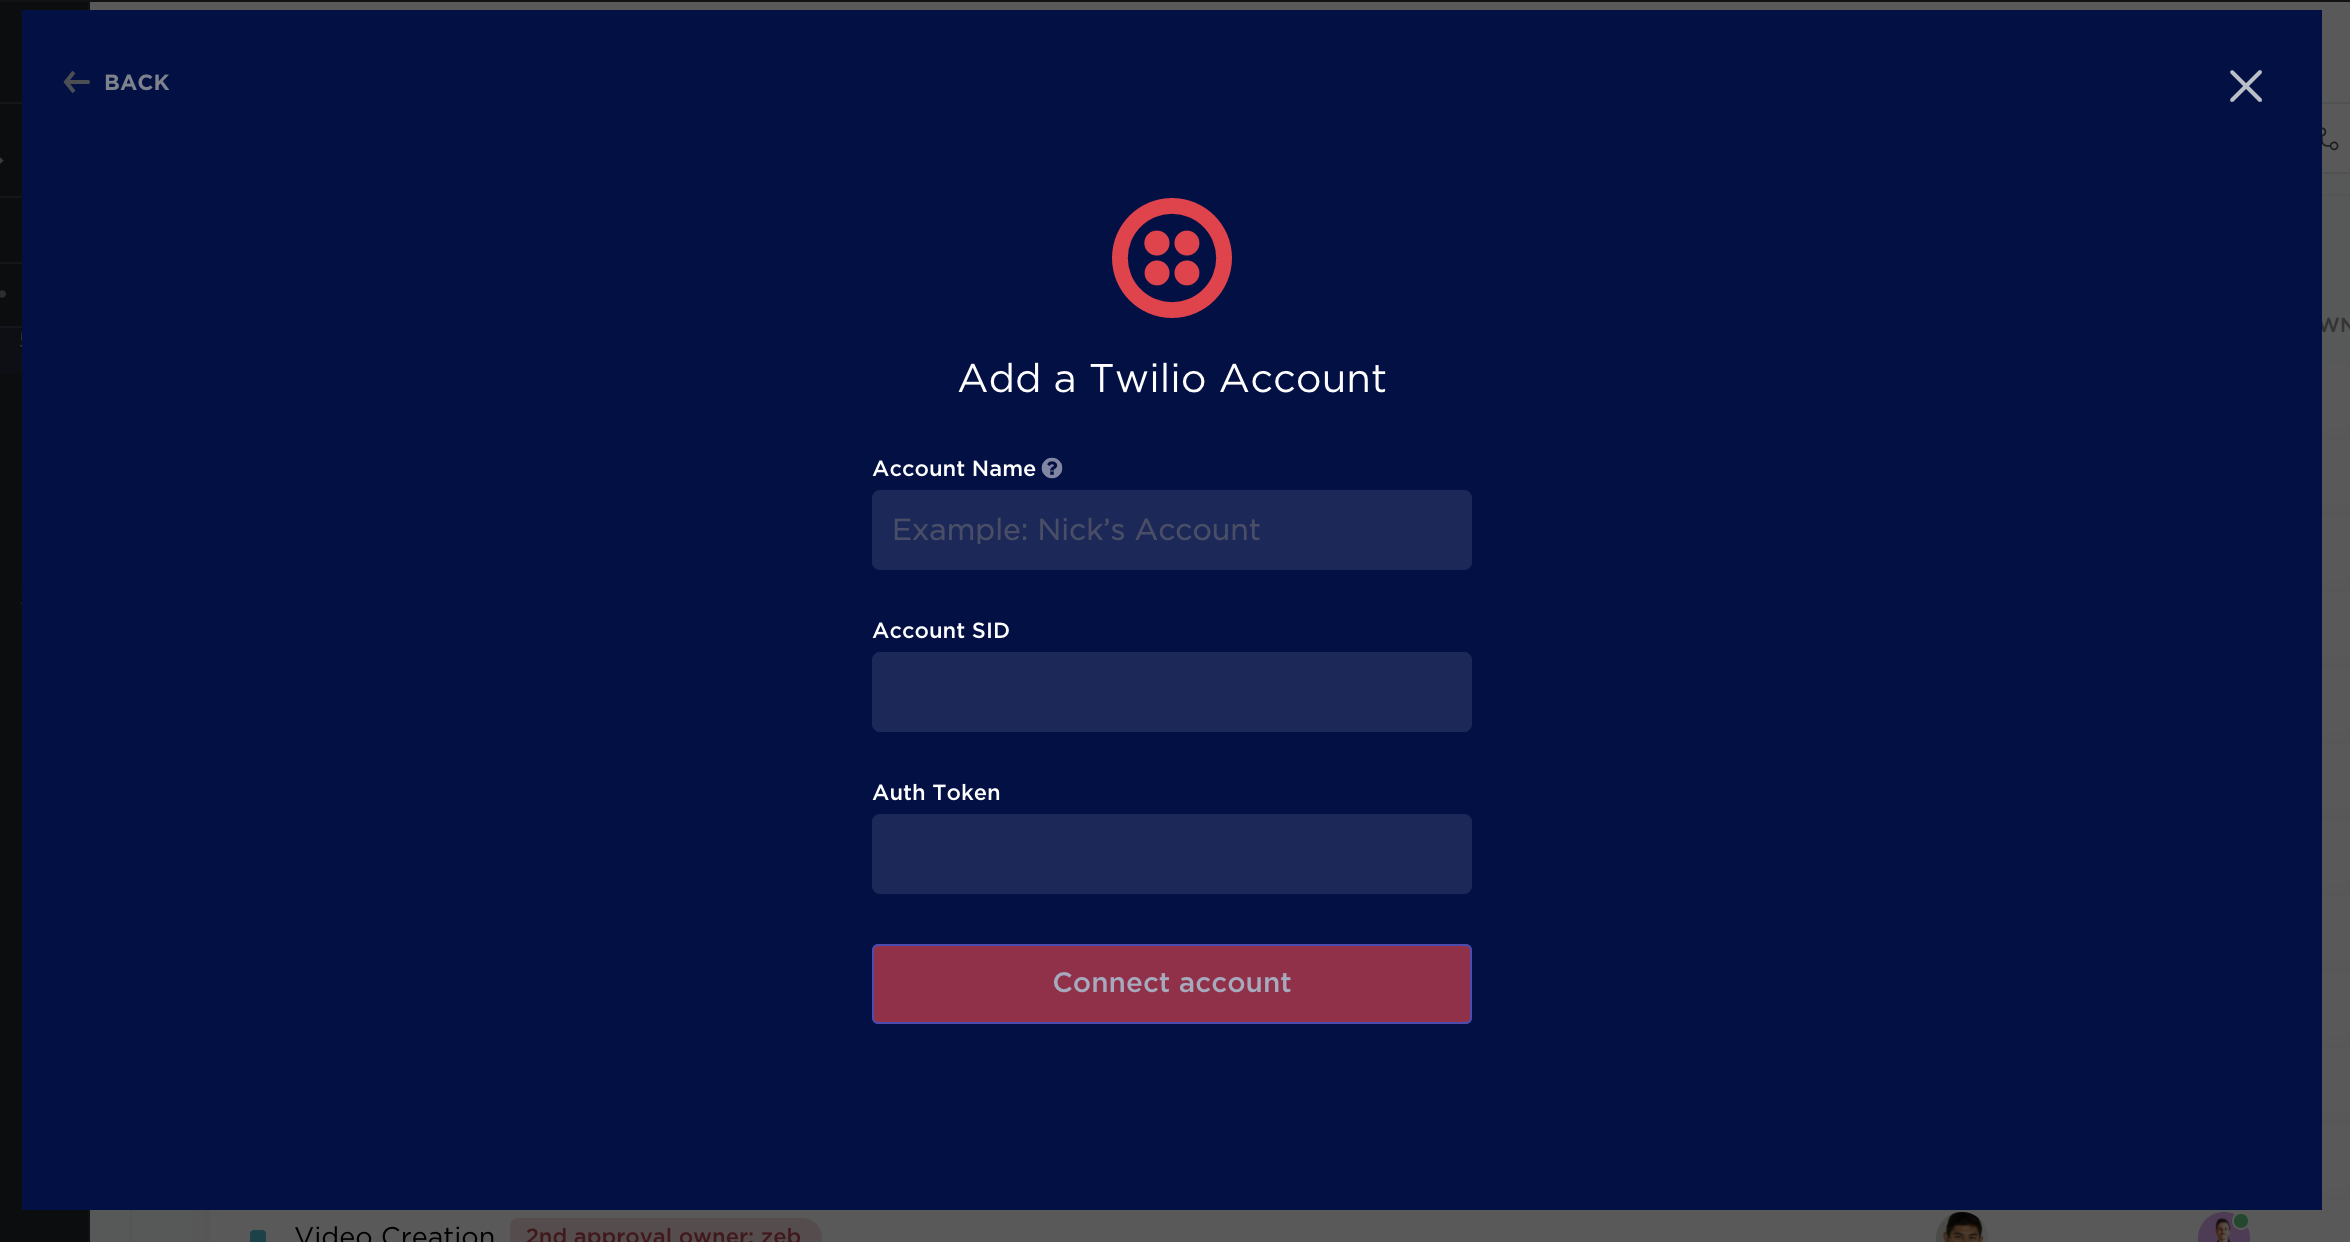 Adding a Twilio account to your Workspace